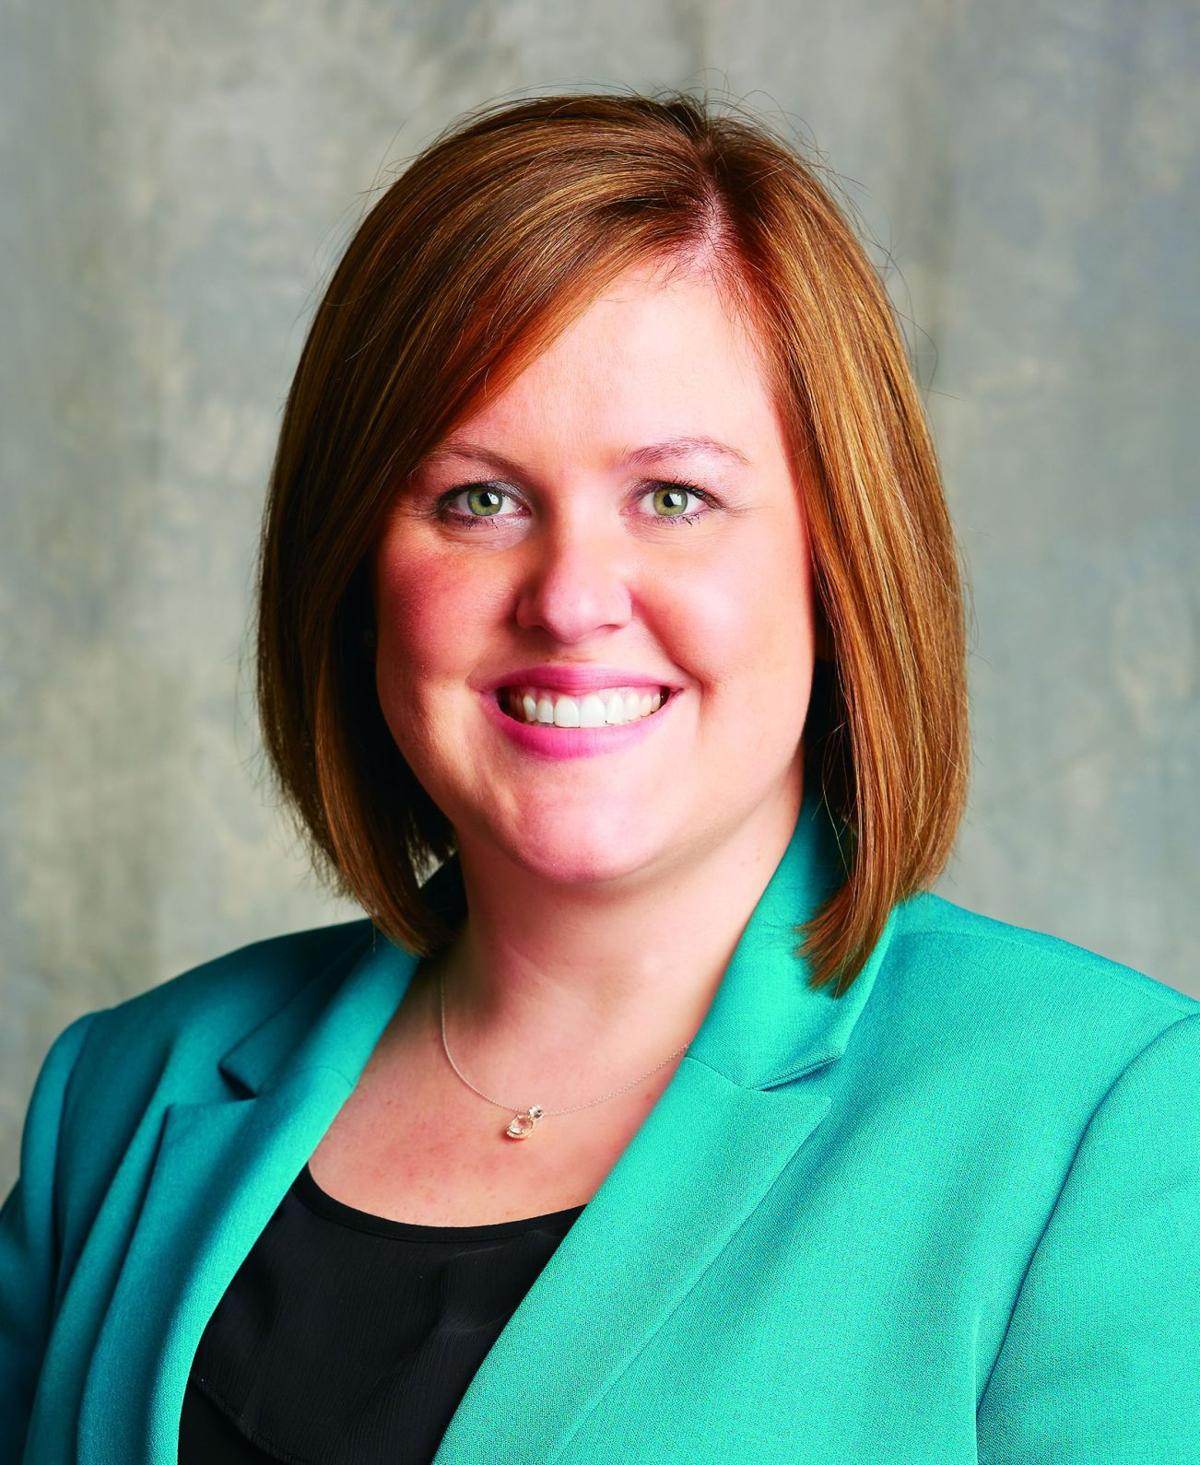 Laporte hospital appoints new ceo health care for Laporte news